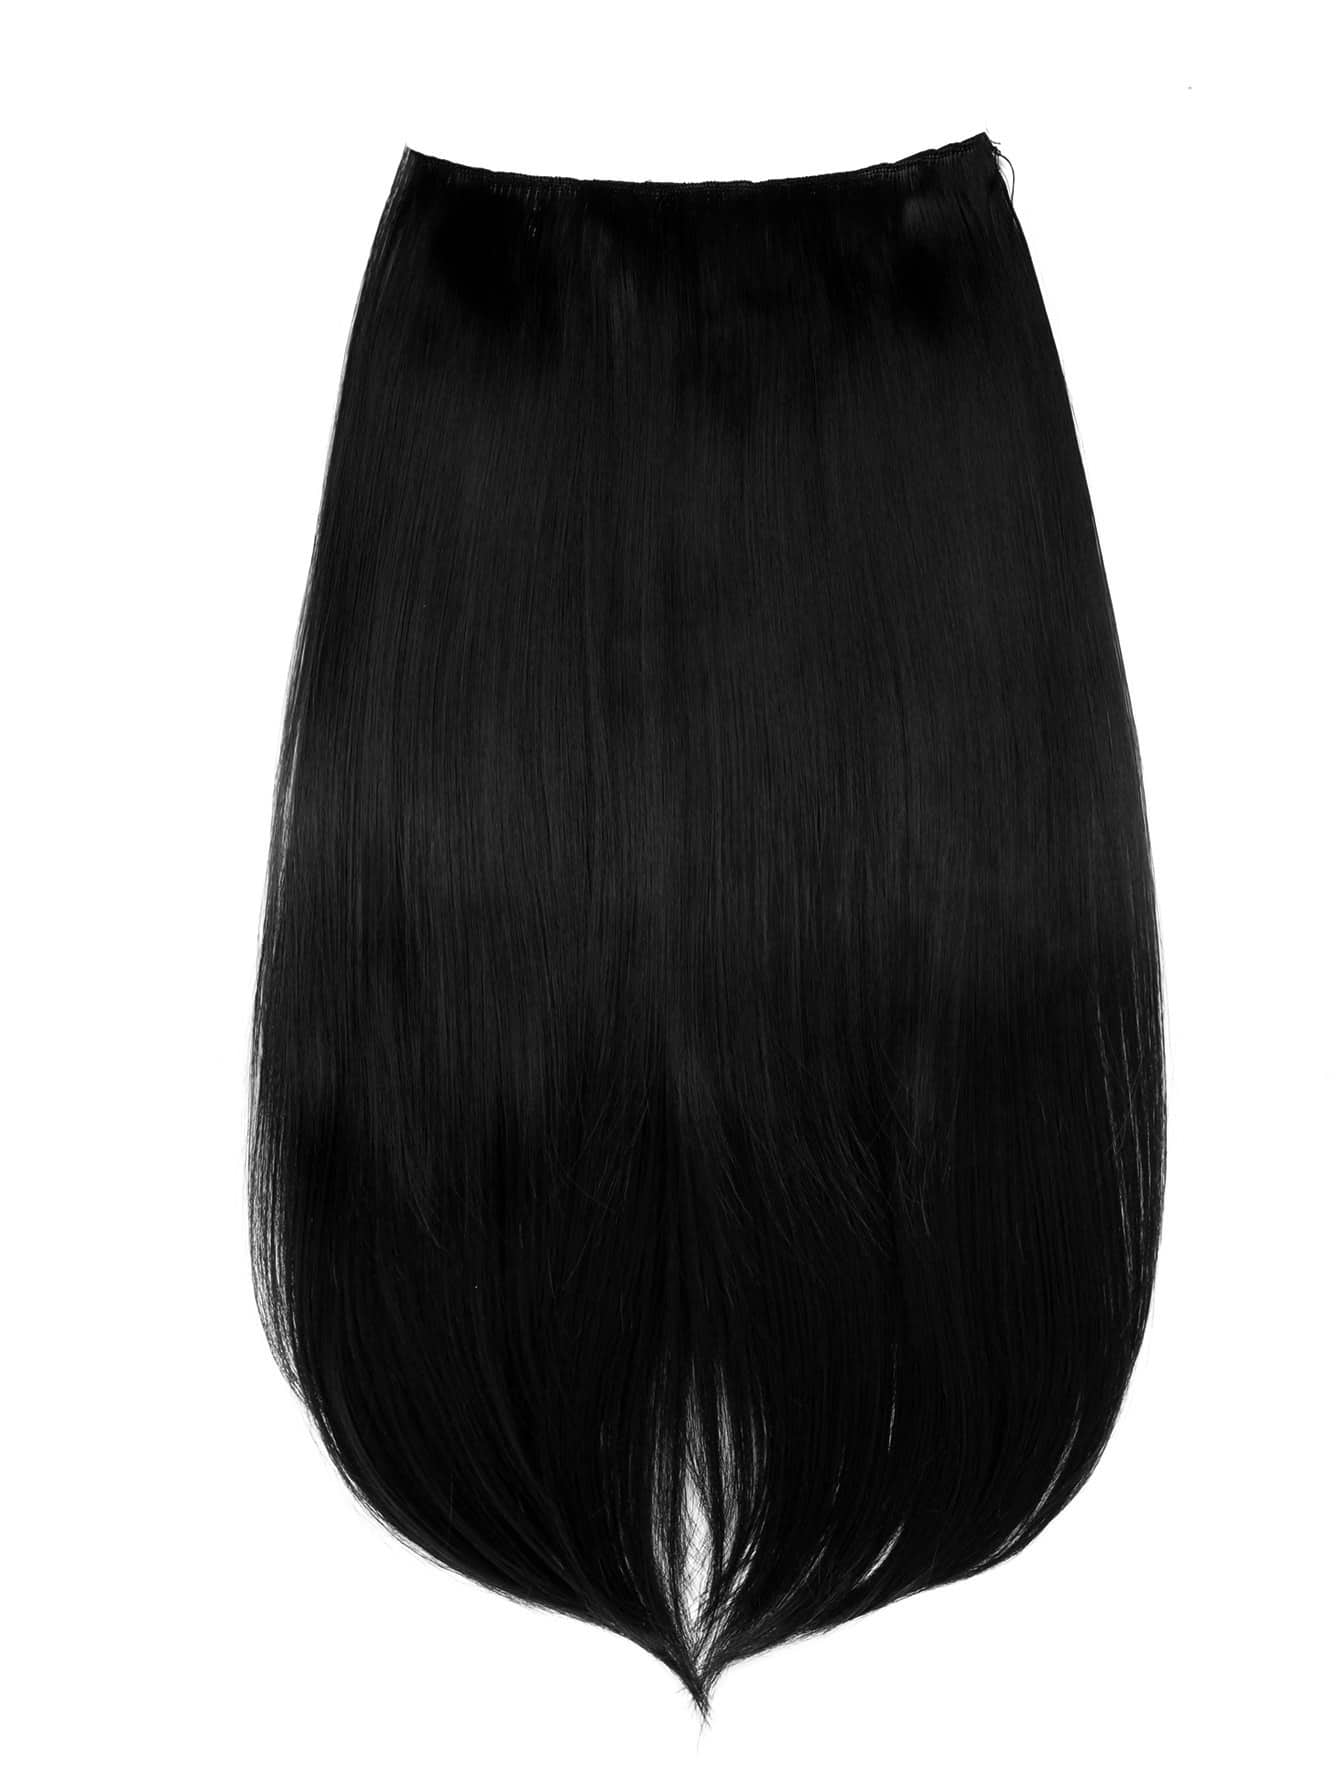 Jet Black Clip In Straight Hair Extension